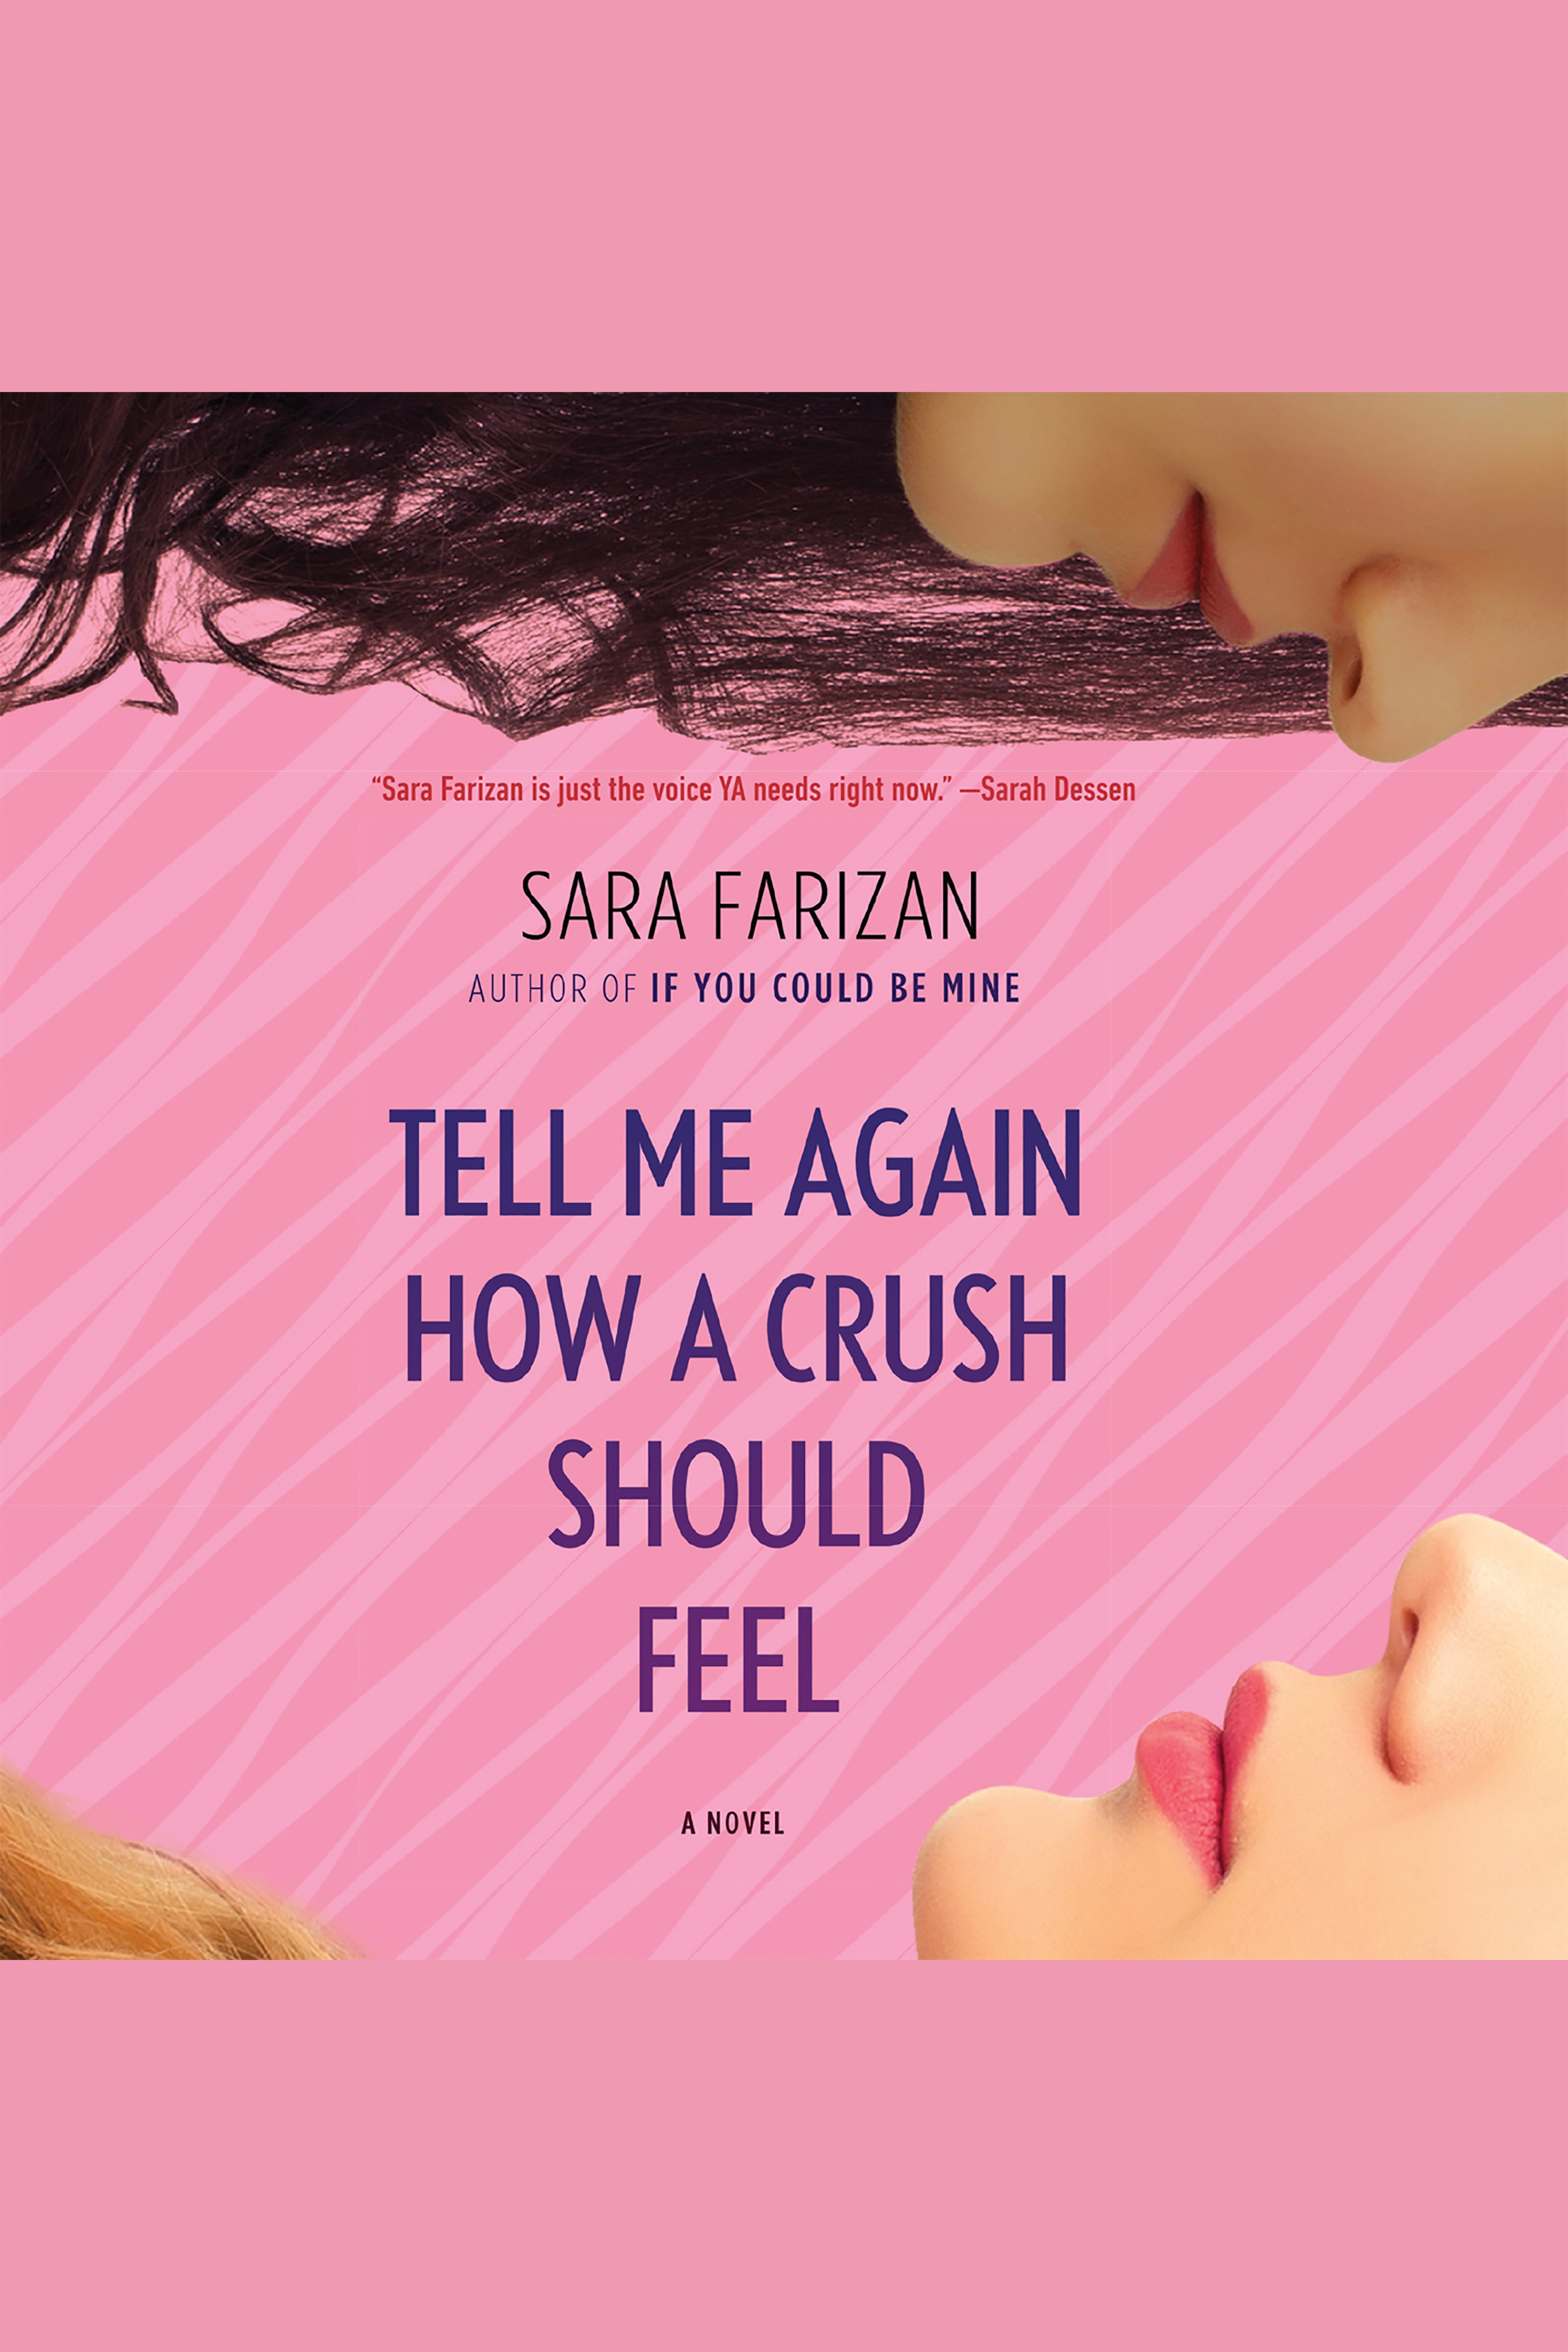 Tell me again how a crush should feel cover image